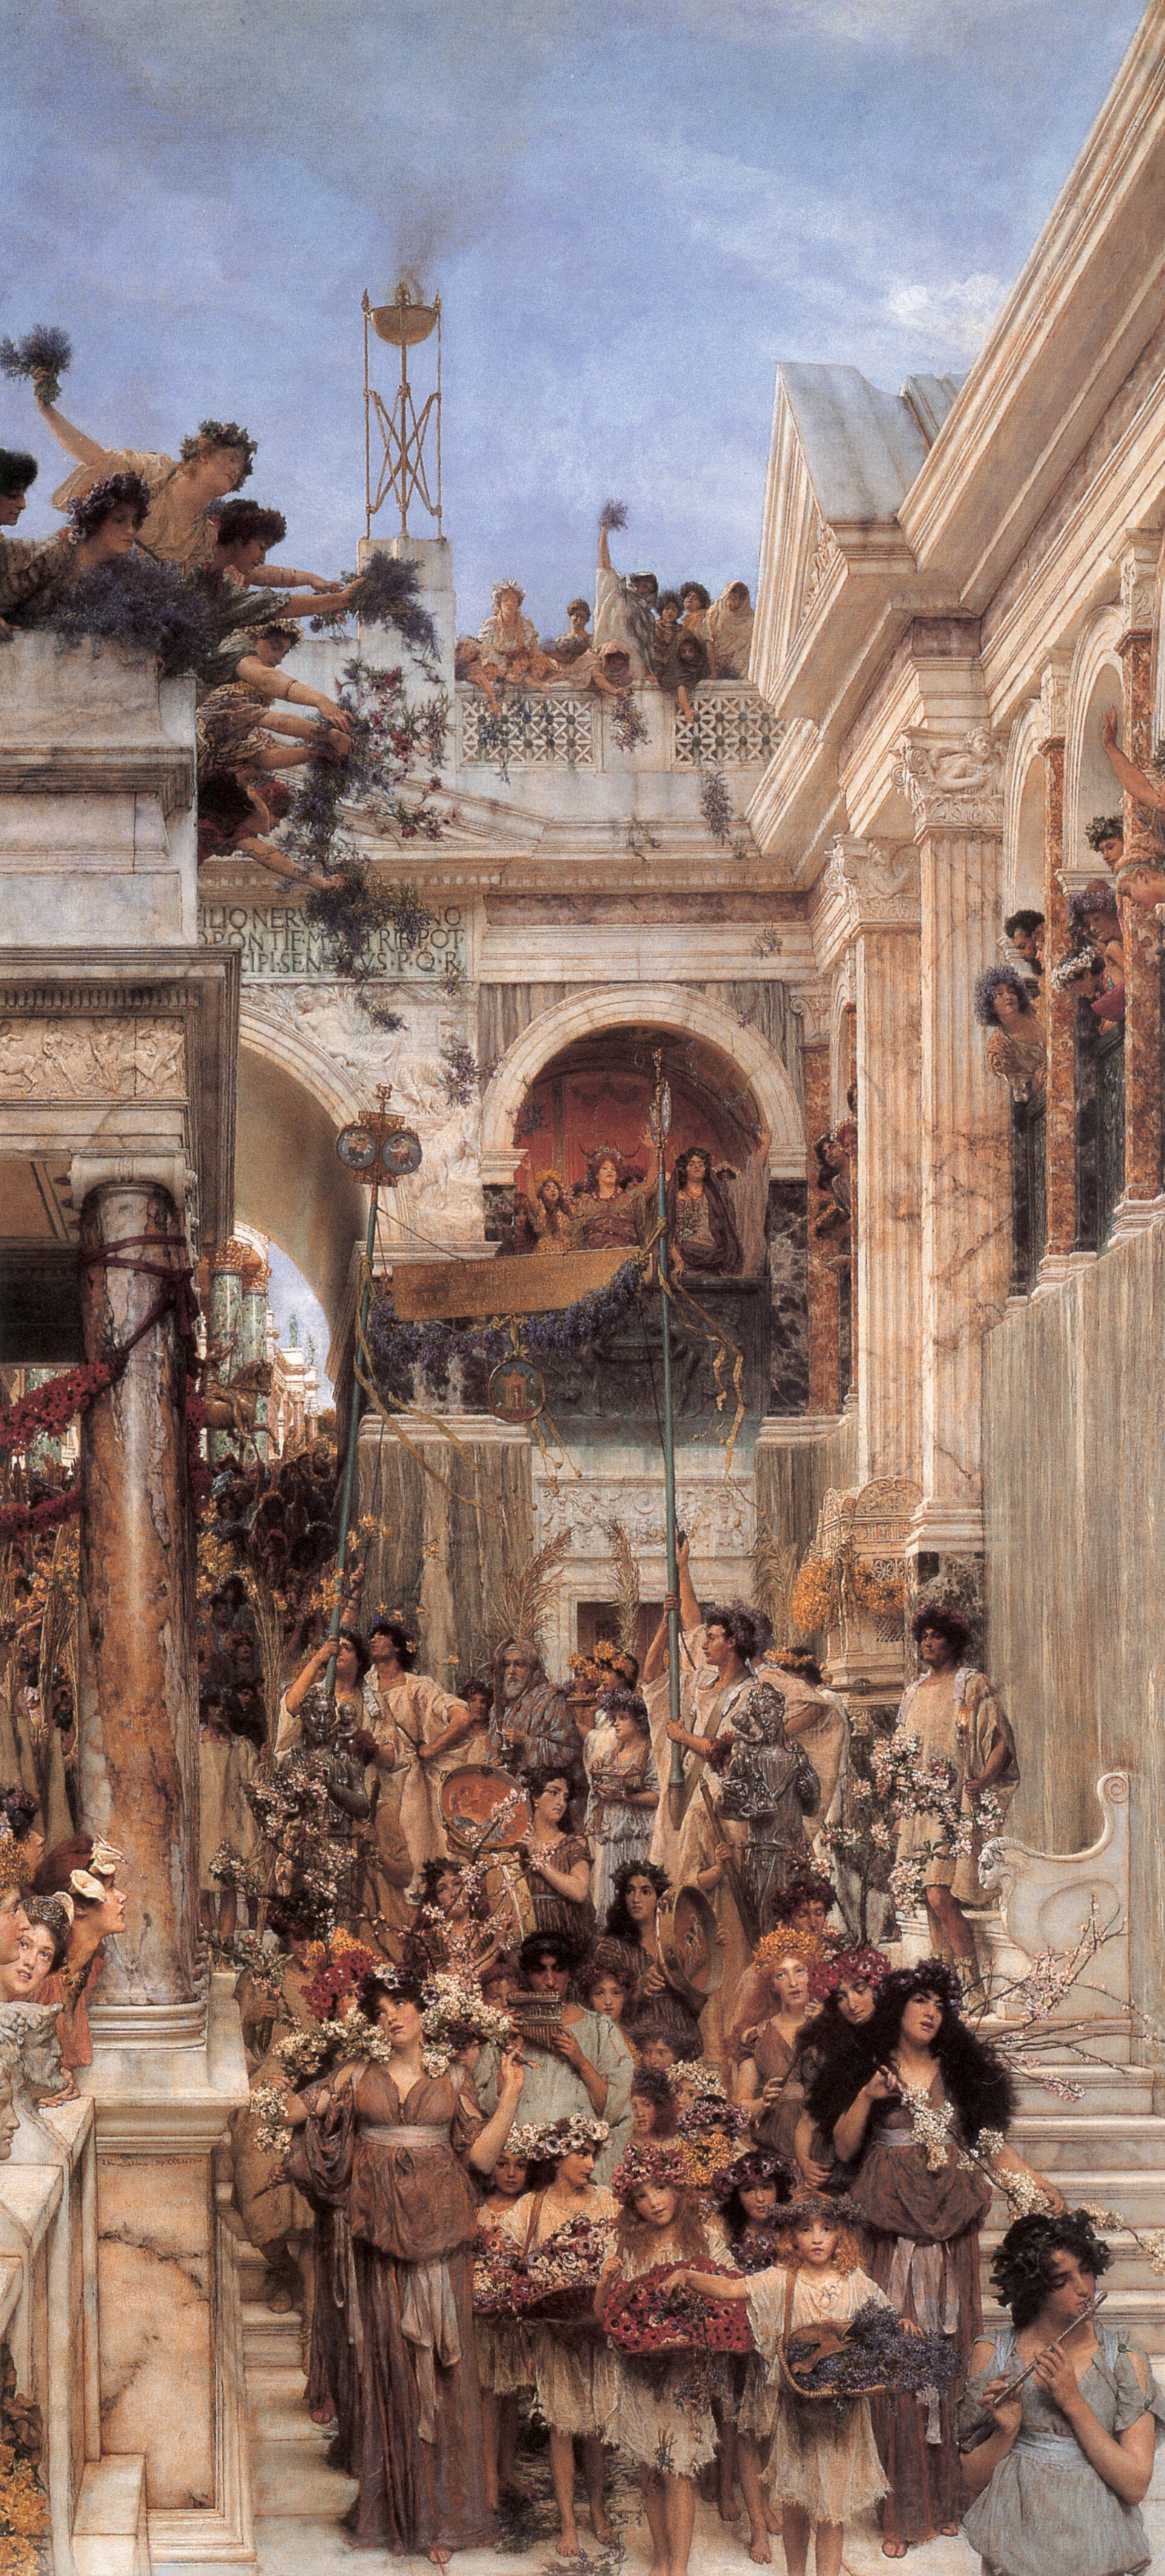 http://uploads2.wikiart.org/images/alma-tadema-lawrence/spring-1894.jpg